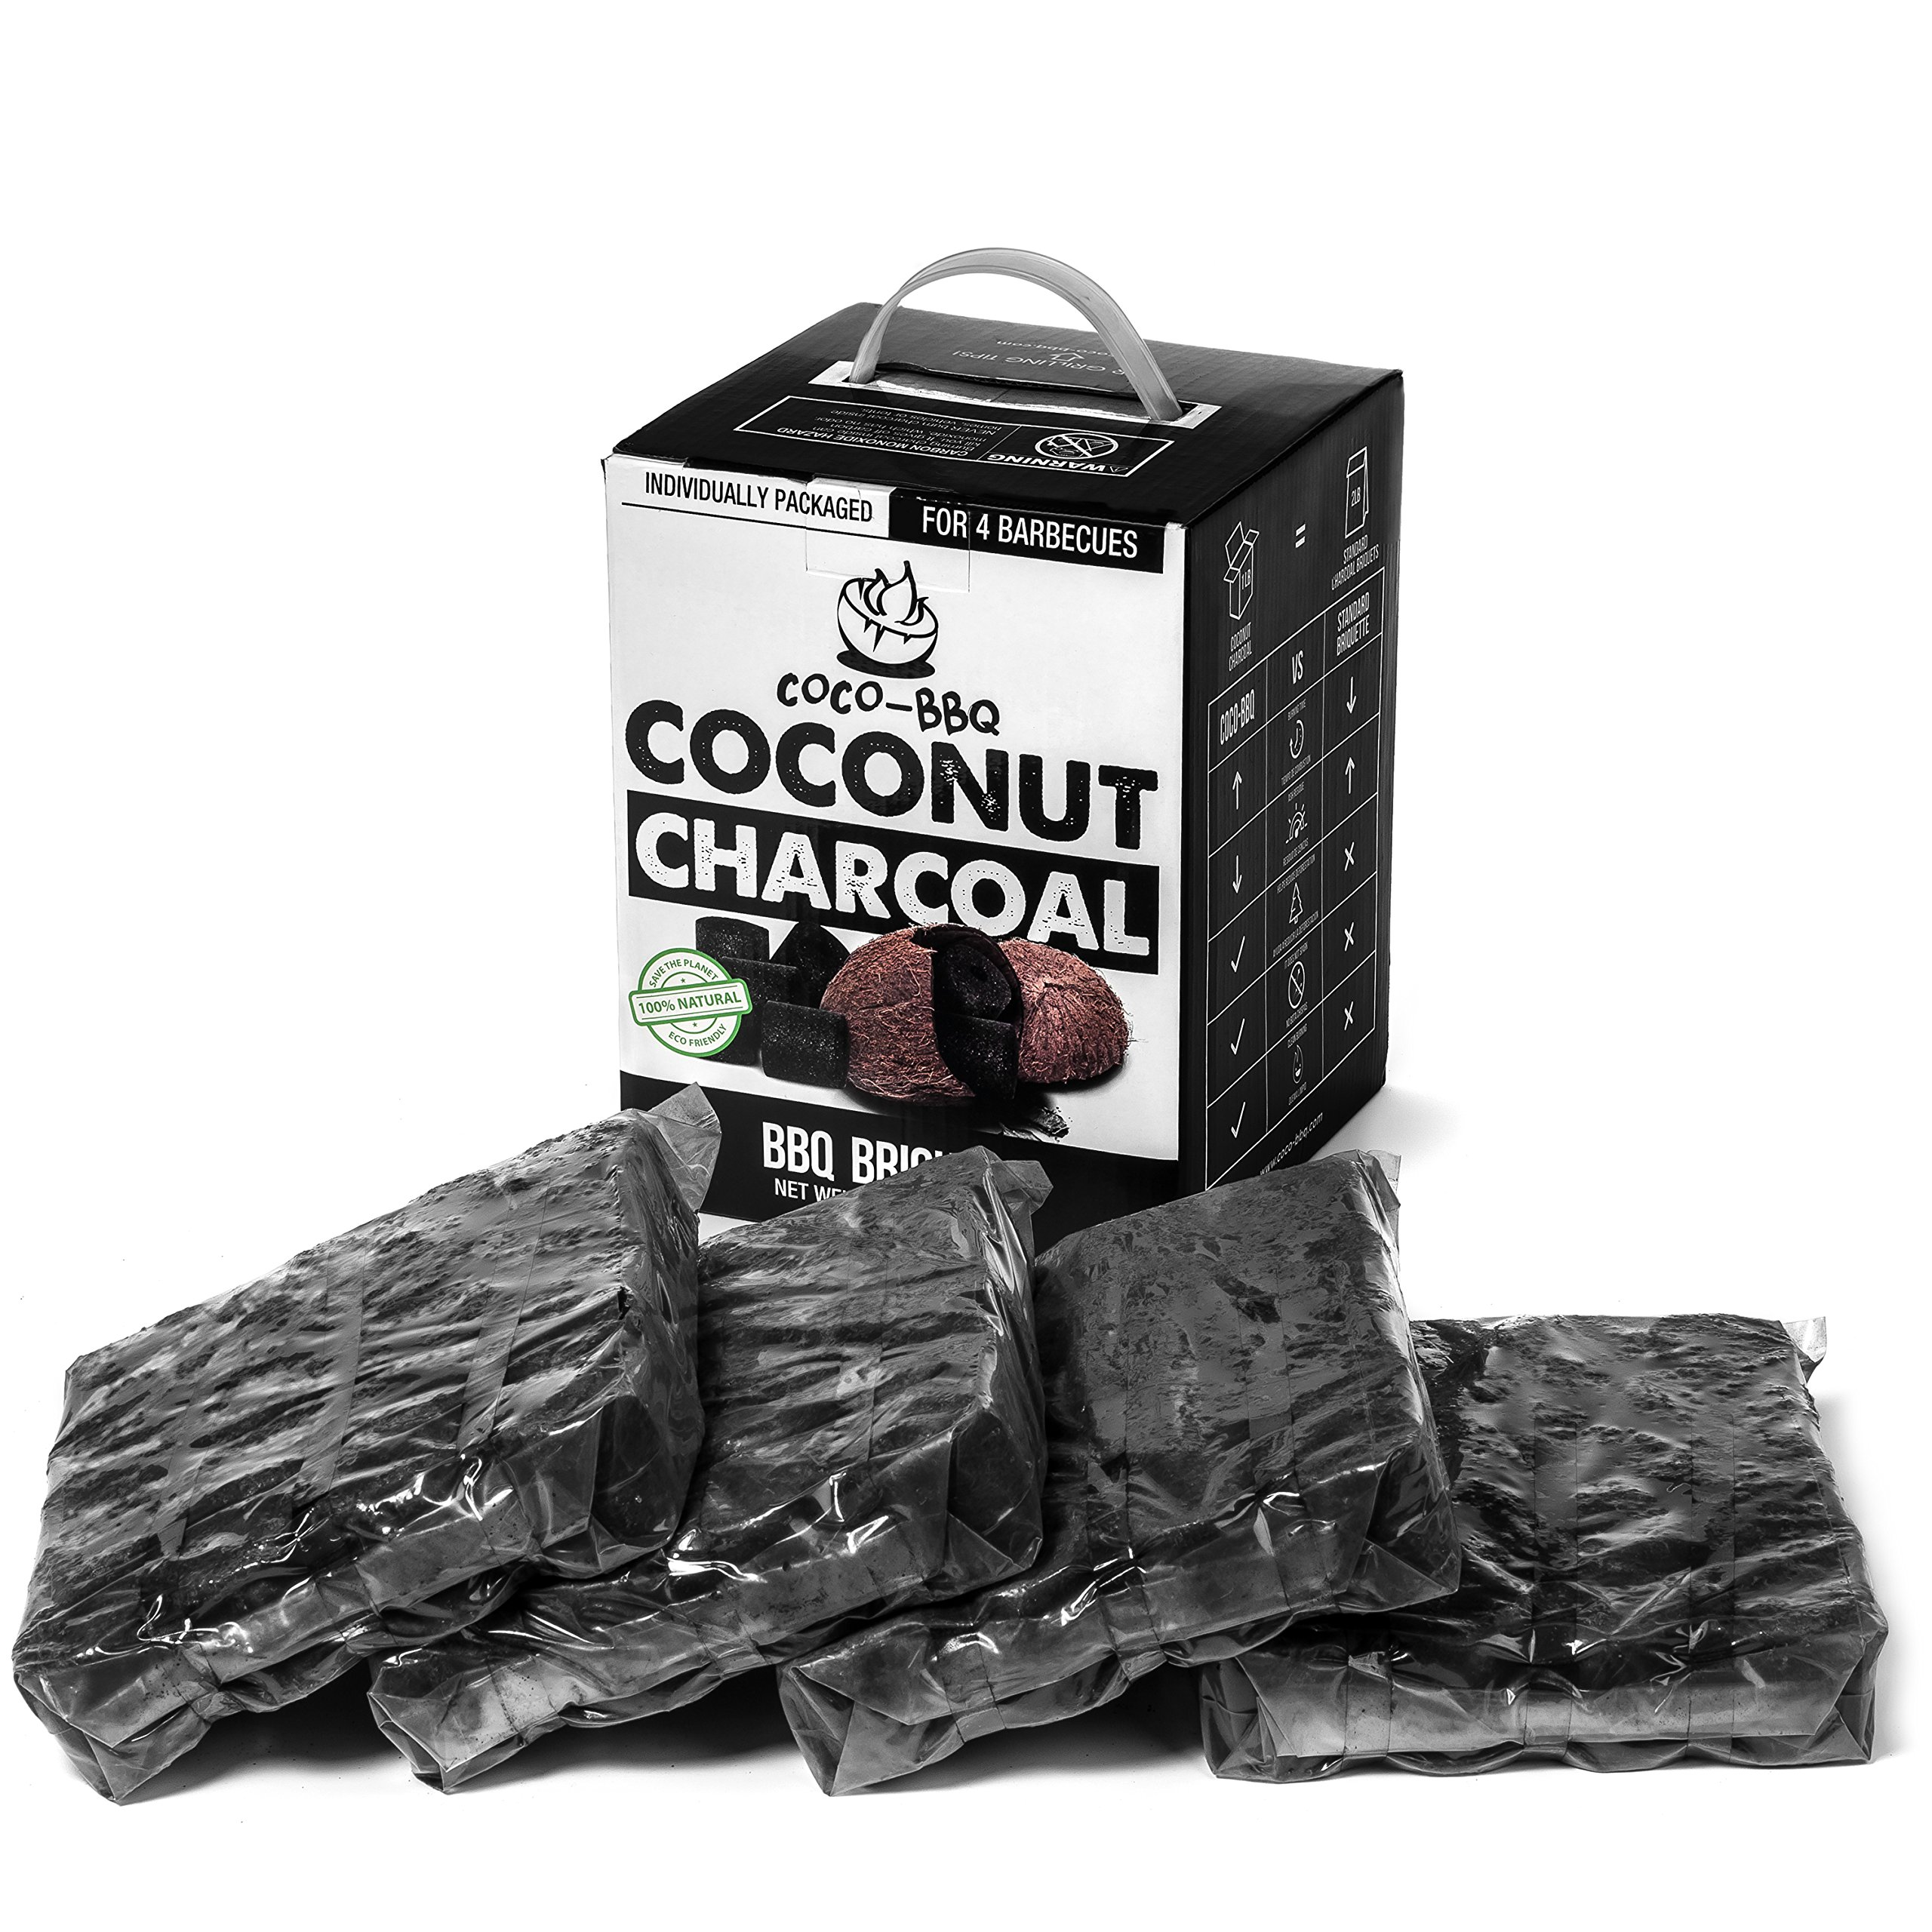 COCO-BBQ Eco-Friendly Barbecue Charcoal Made from Coconut Shells for Low and Slow Grilling by COCO-BBQ (Image #2)